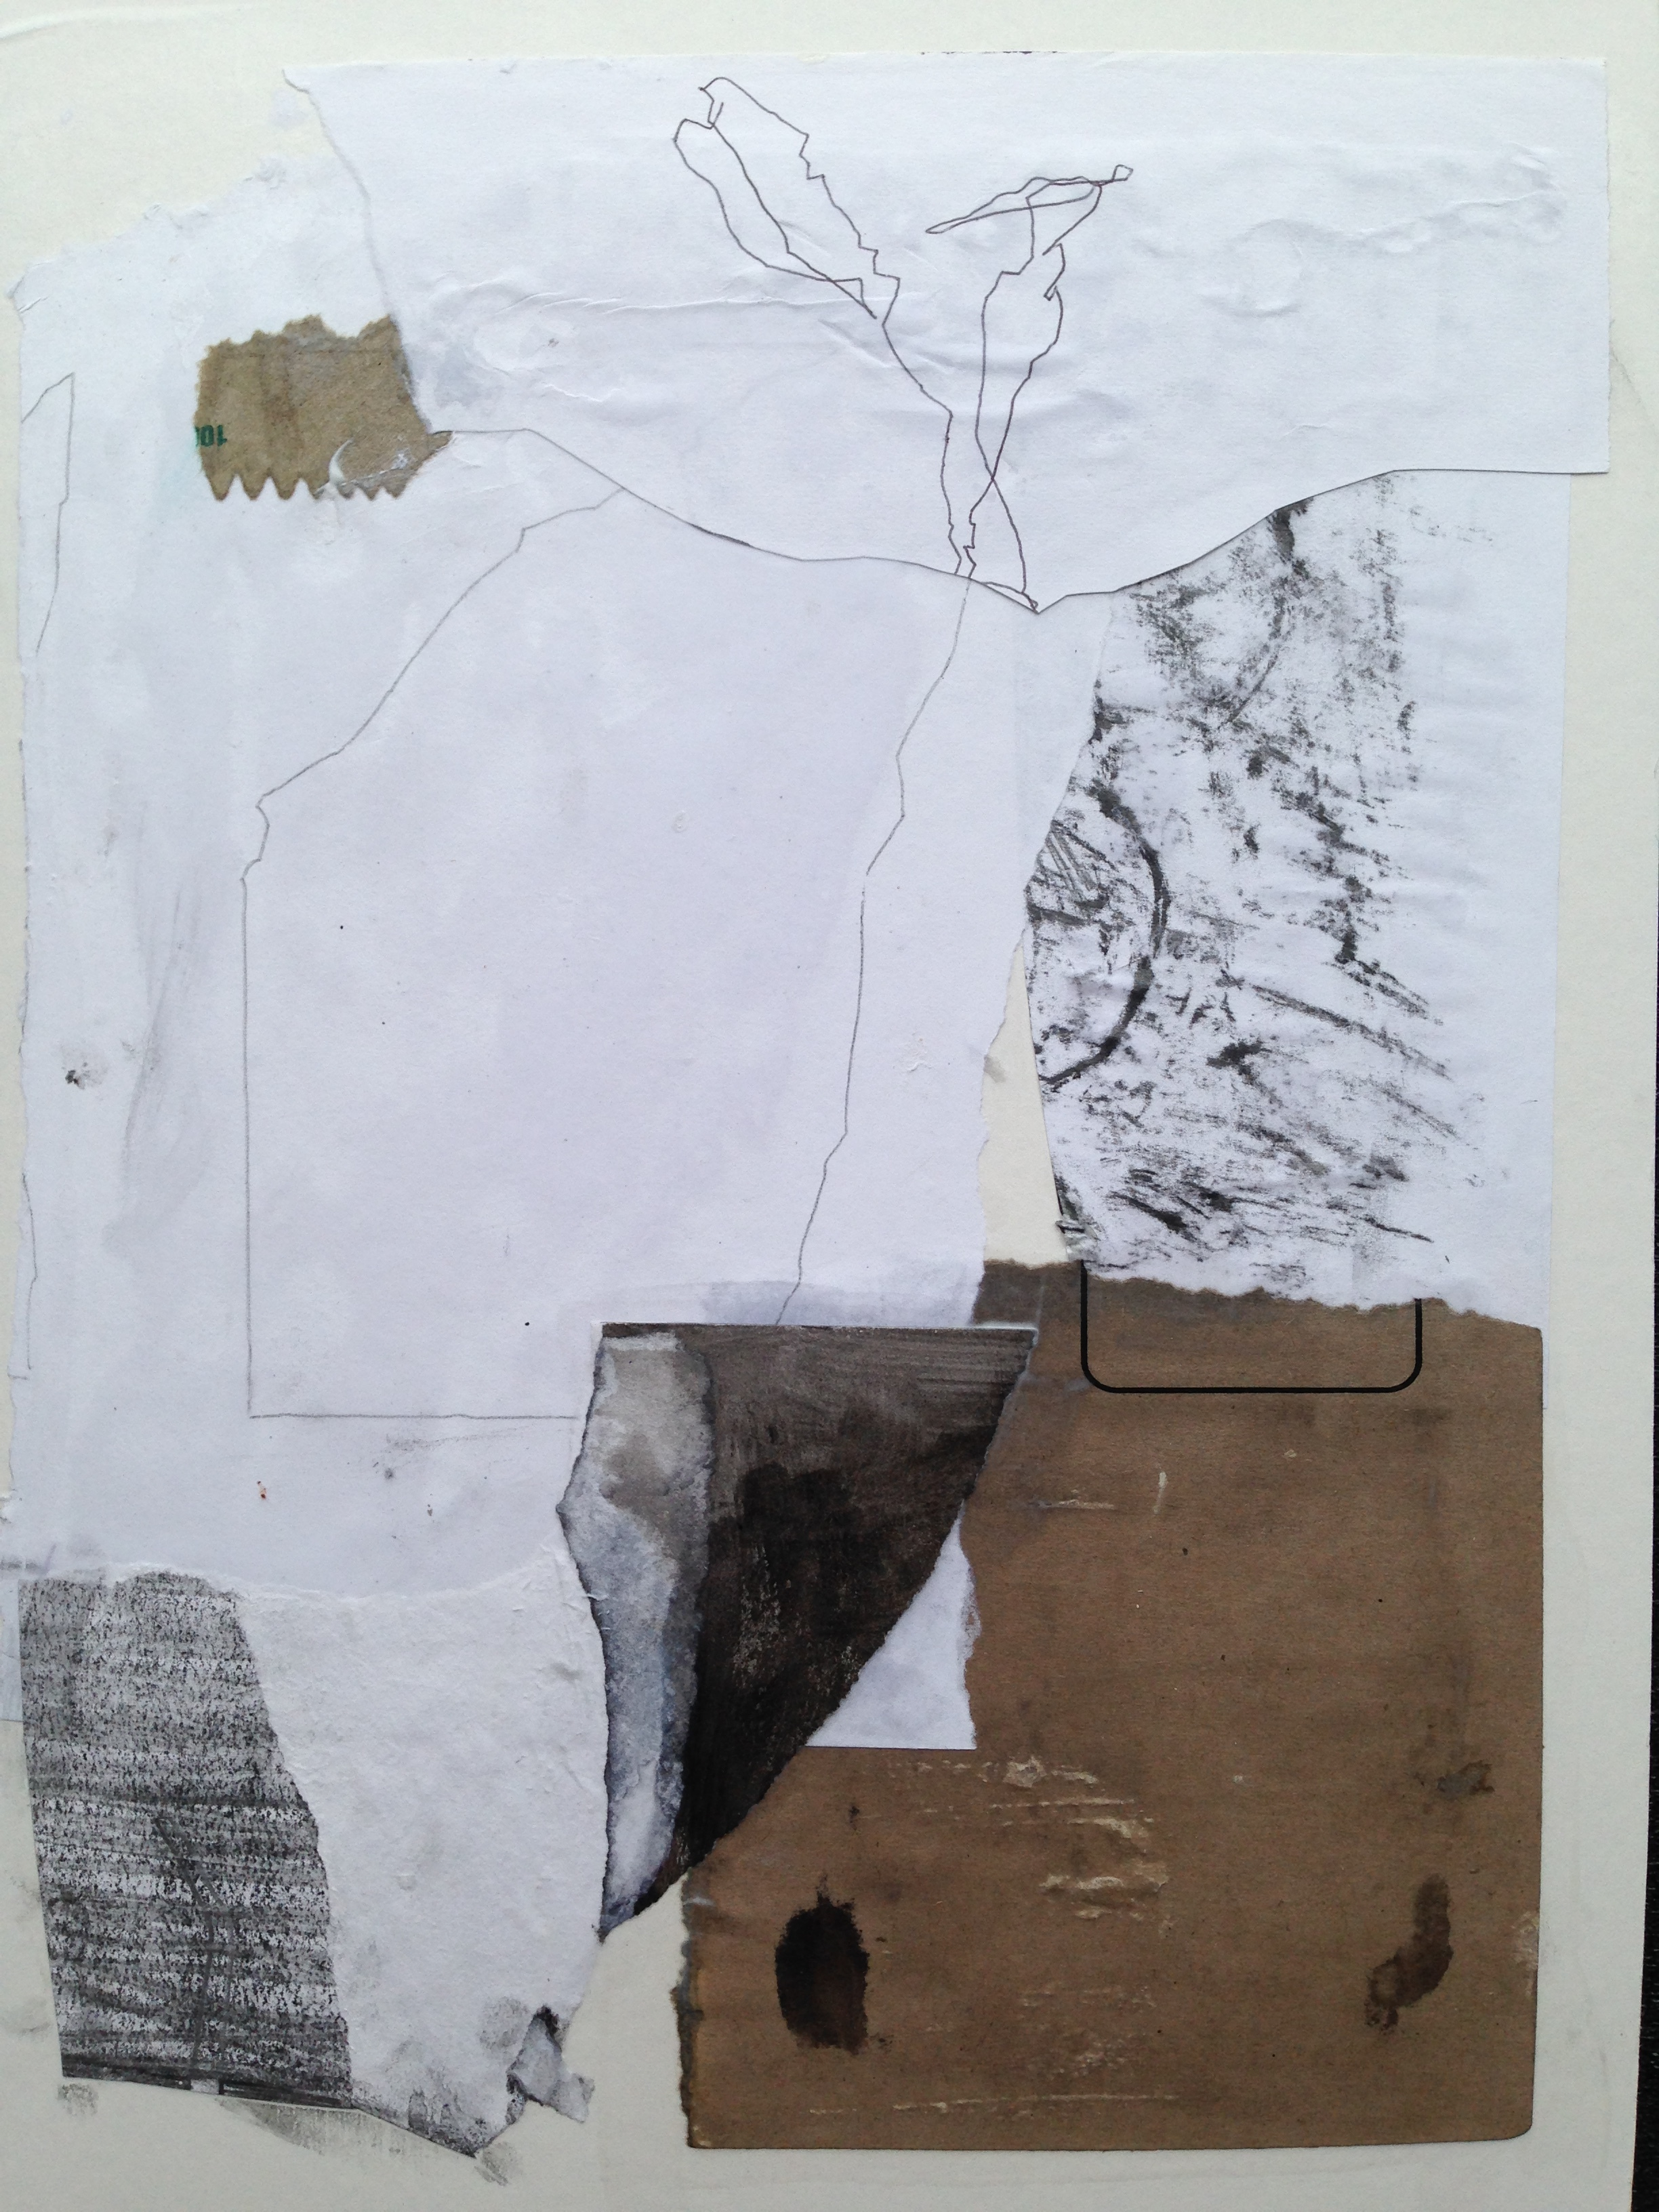 Blind contour drawing on bond paper, torn papers from old collages and brown paper envelope